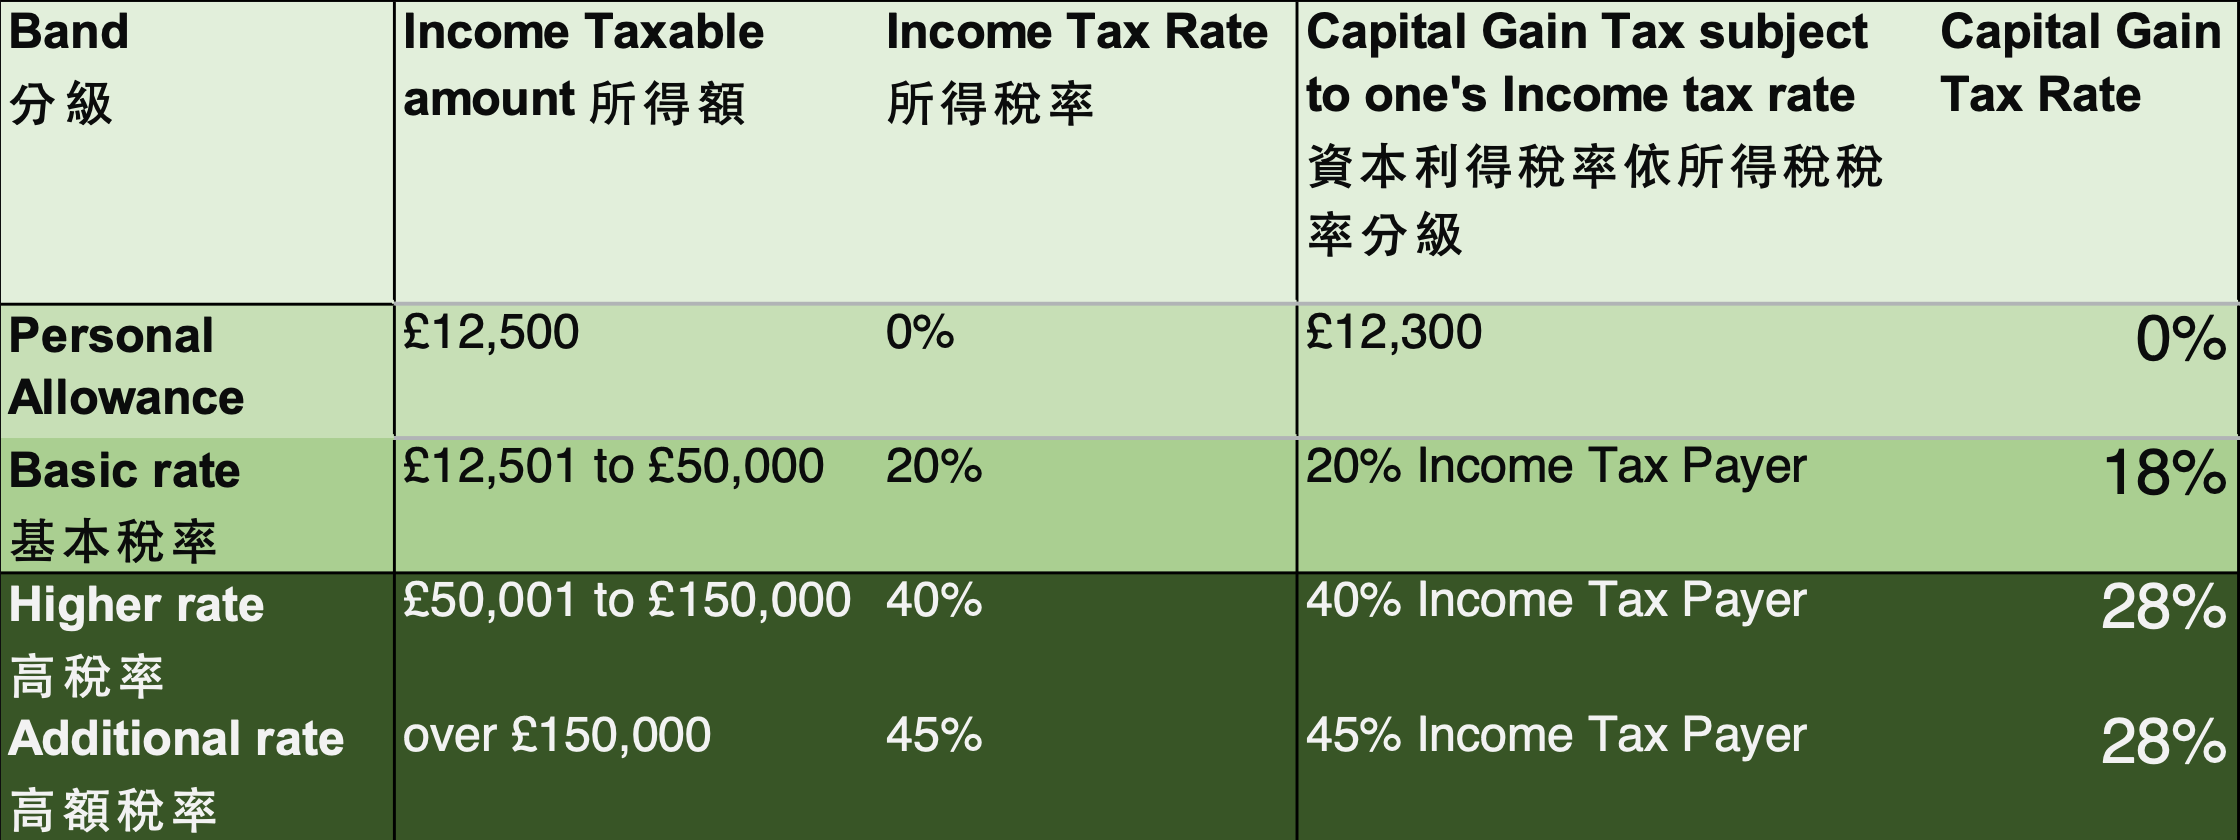 Tax Table-1